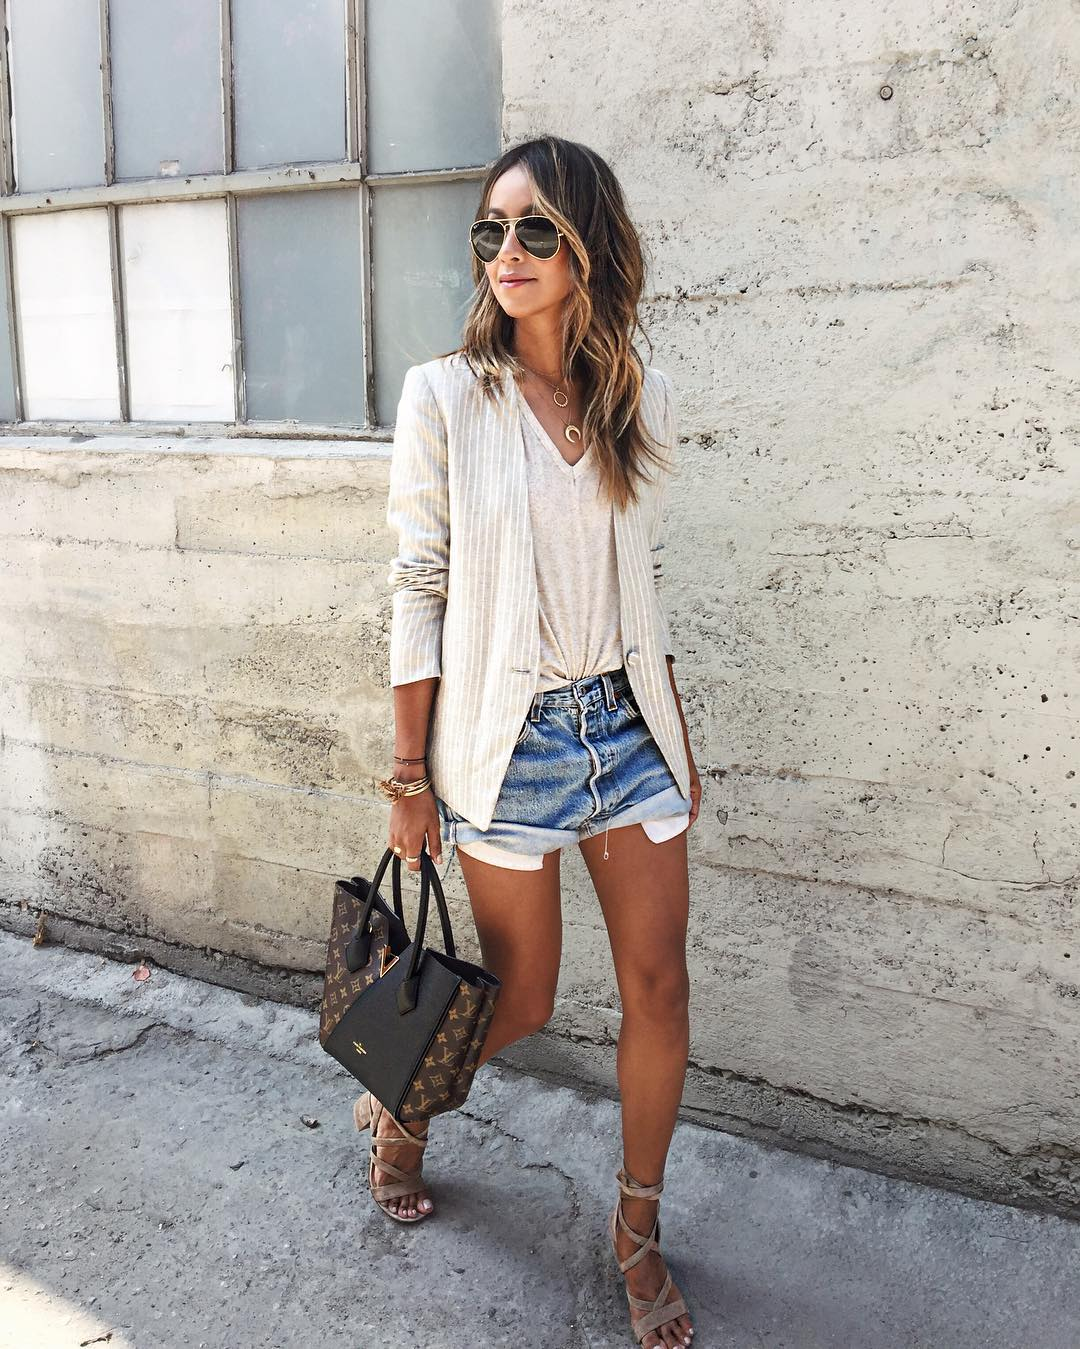 Womenu0026#39;s Fashion on a Budget | Style Review | Online Style Magazine | Reviews - Blog - Trends